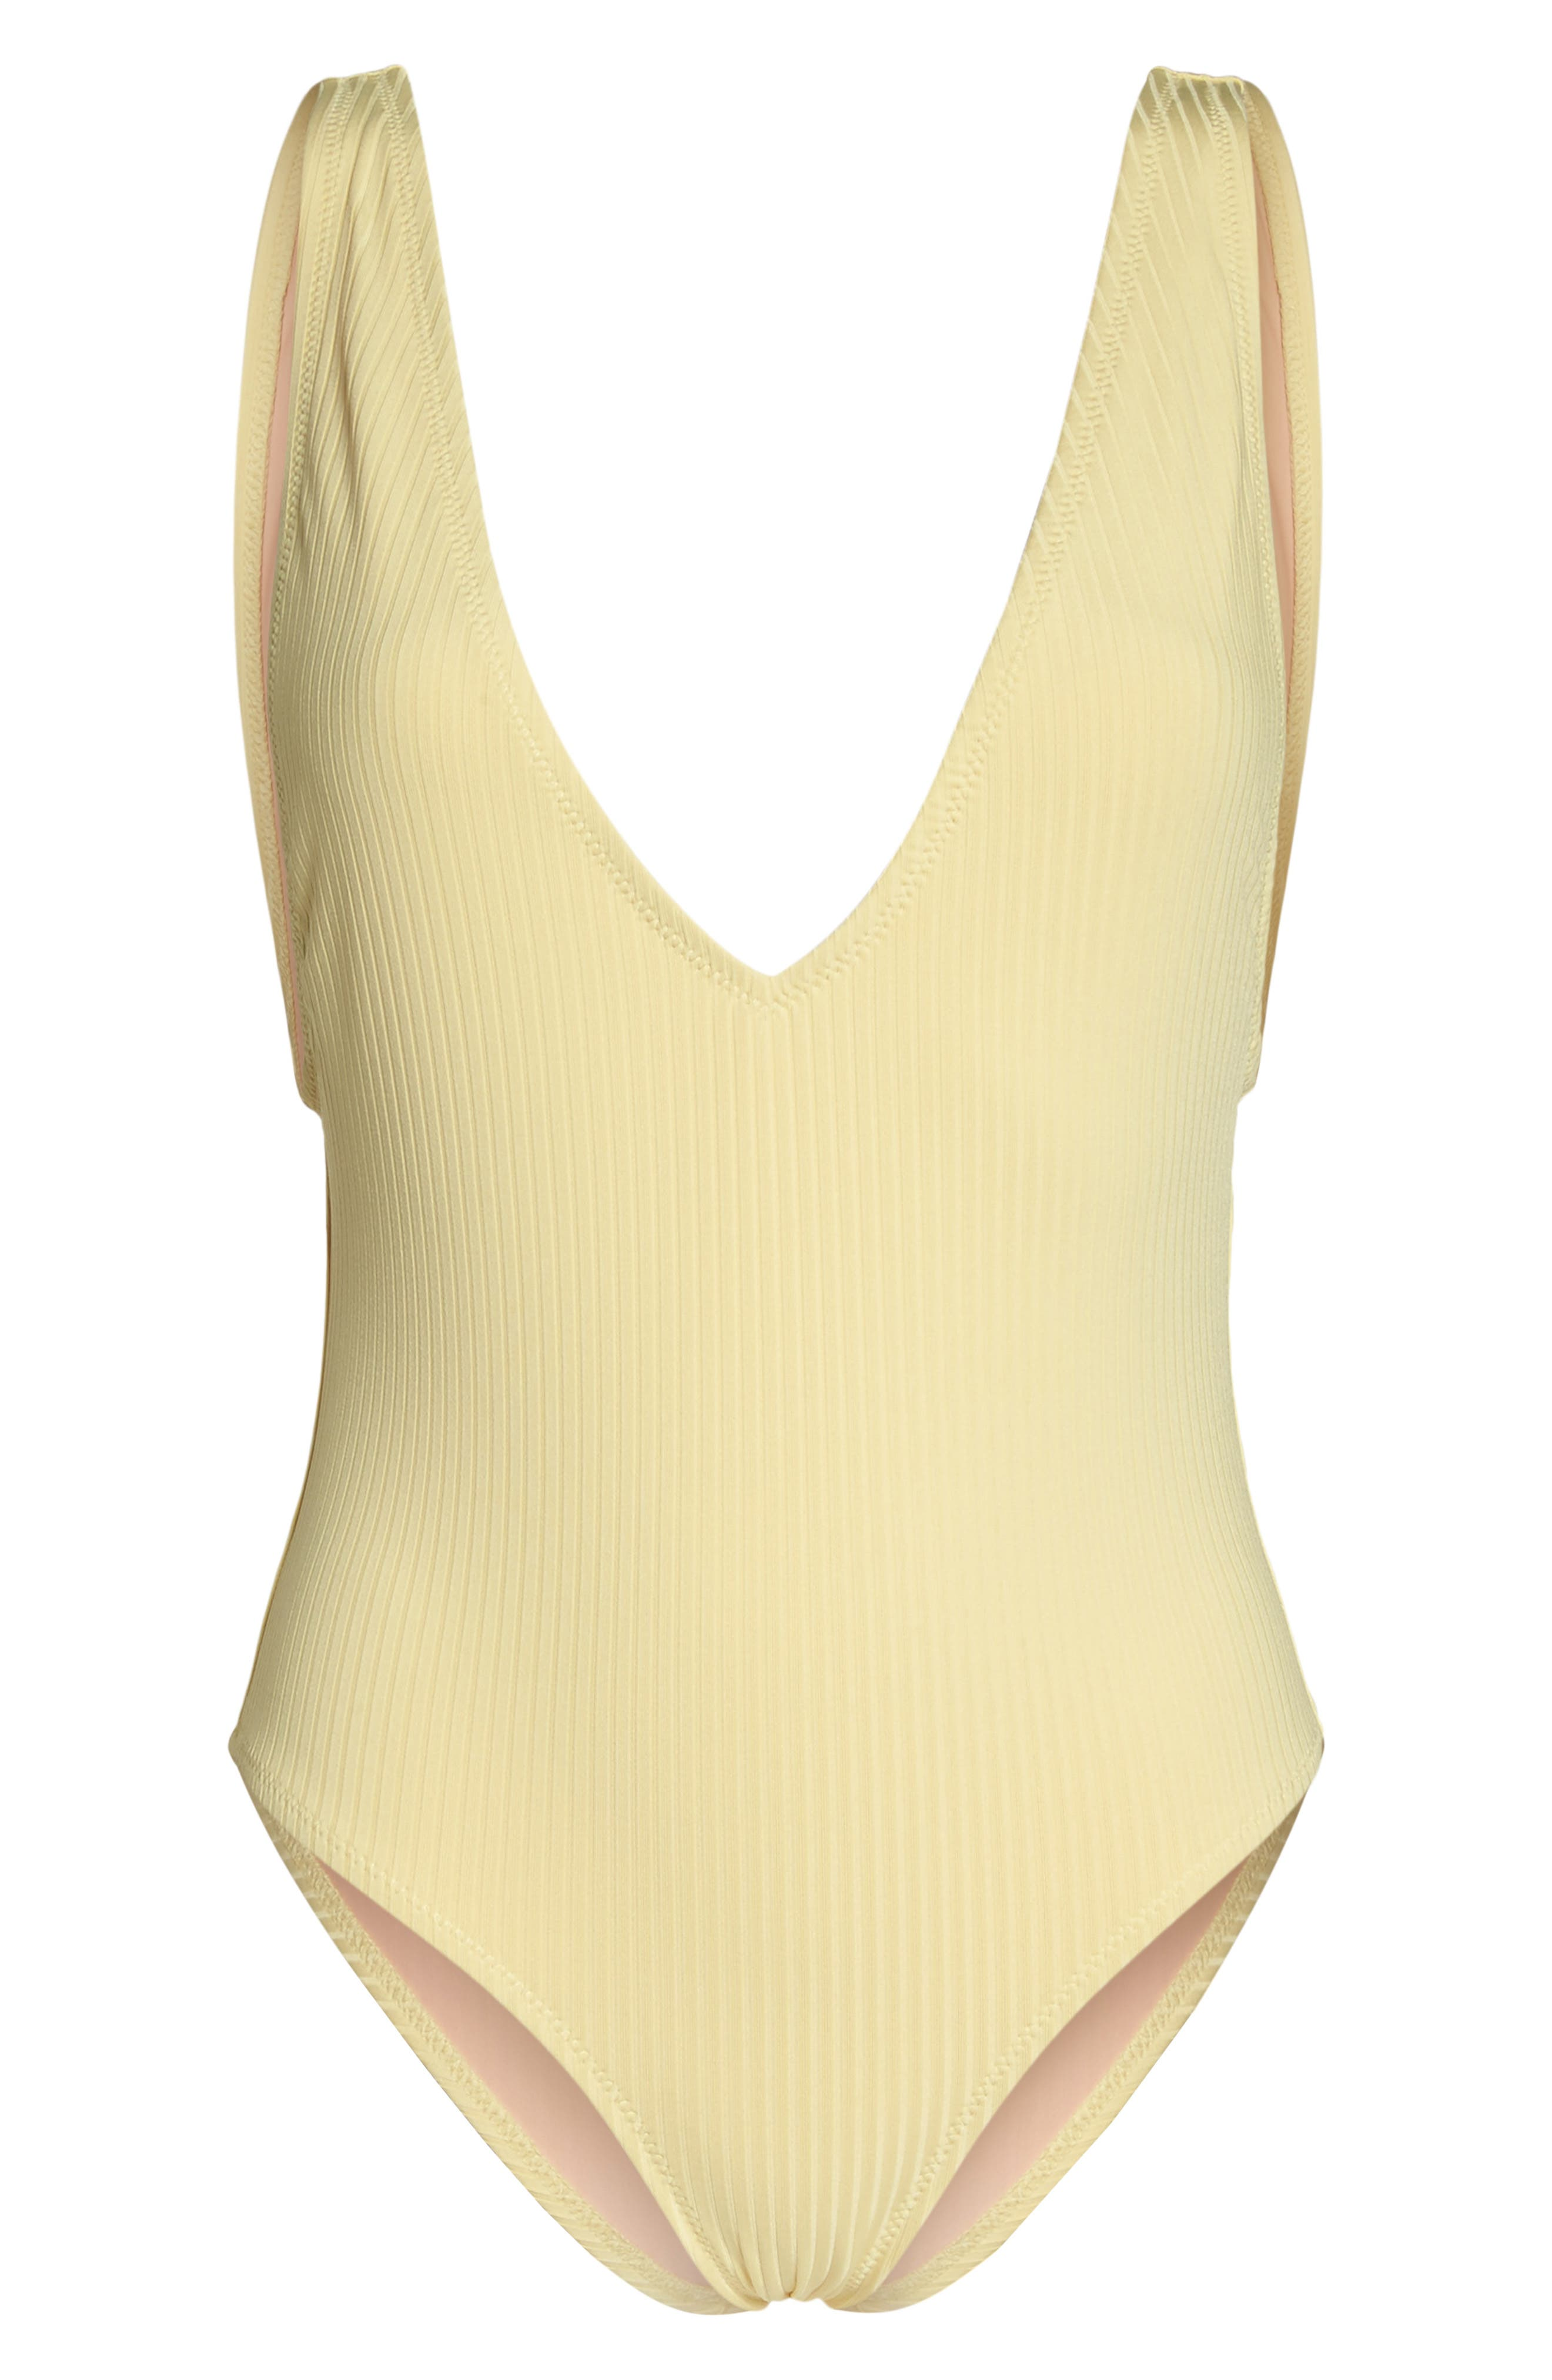 Vermont One-Piece Swimsuit,                             Alternate thumbnail 6, color,                             Soft Yellow